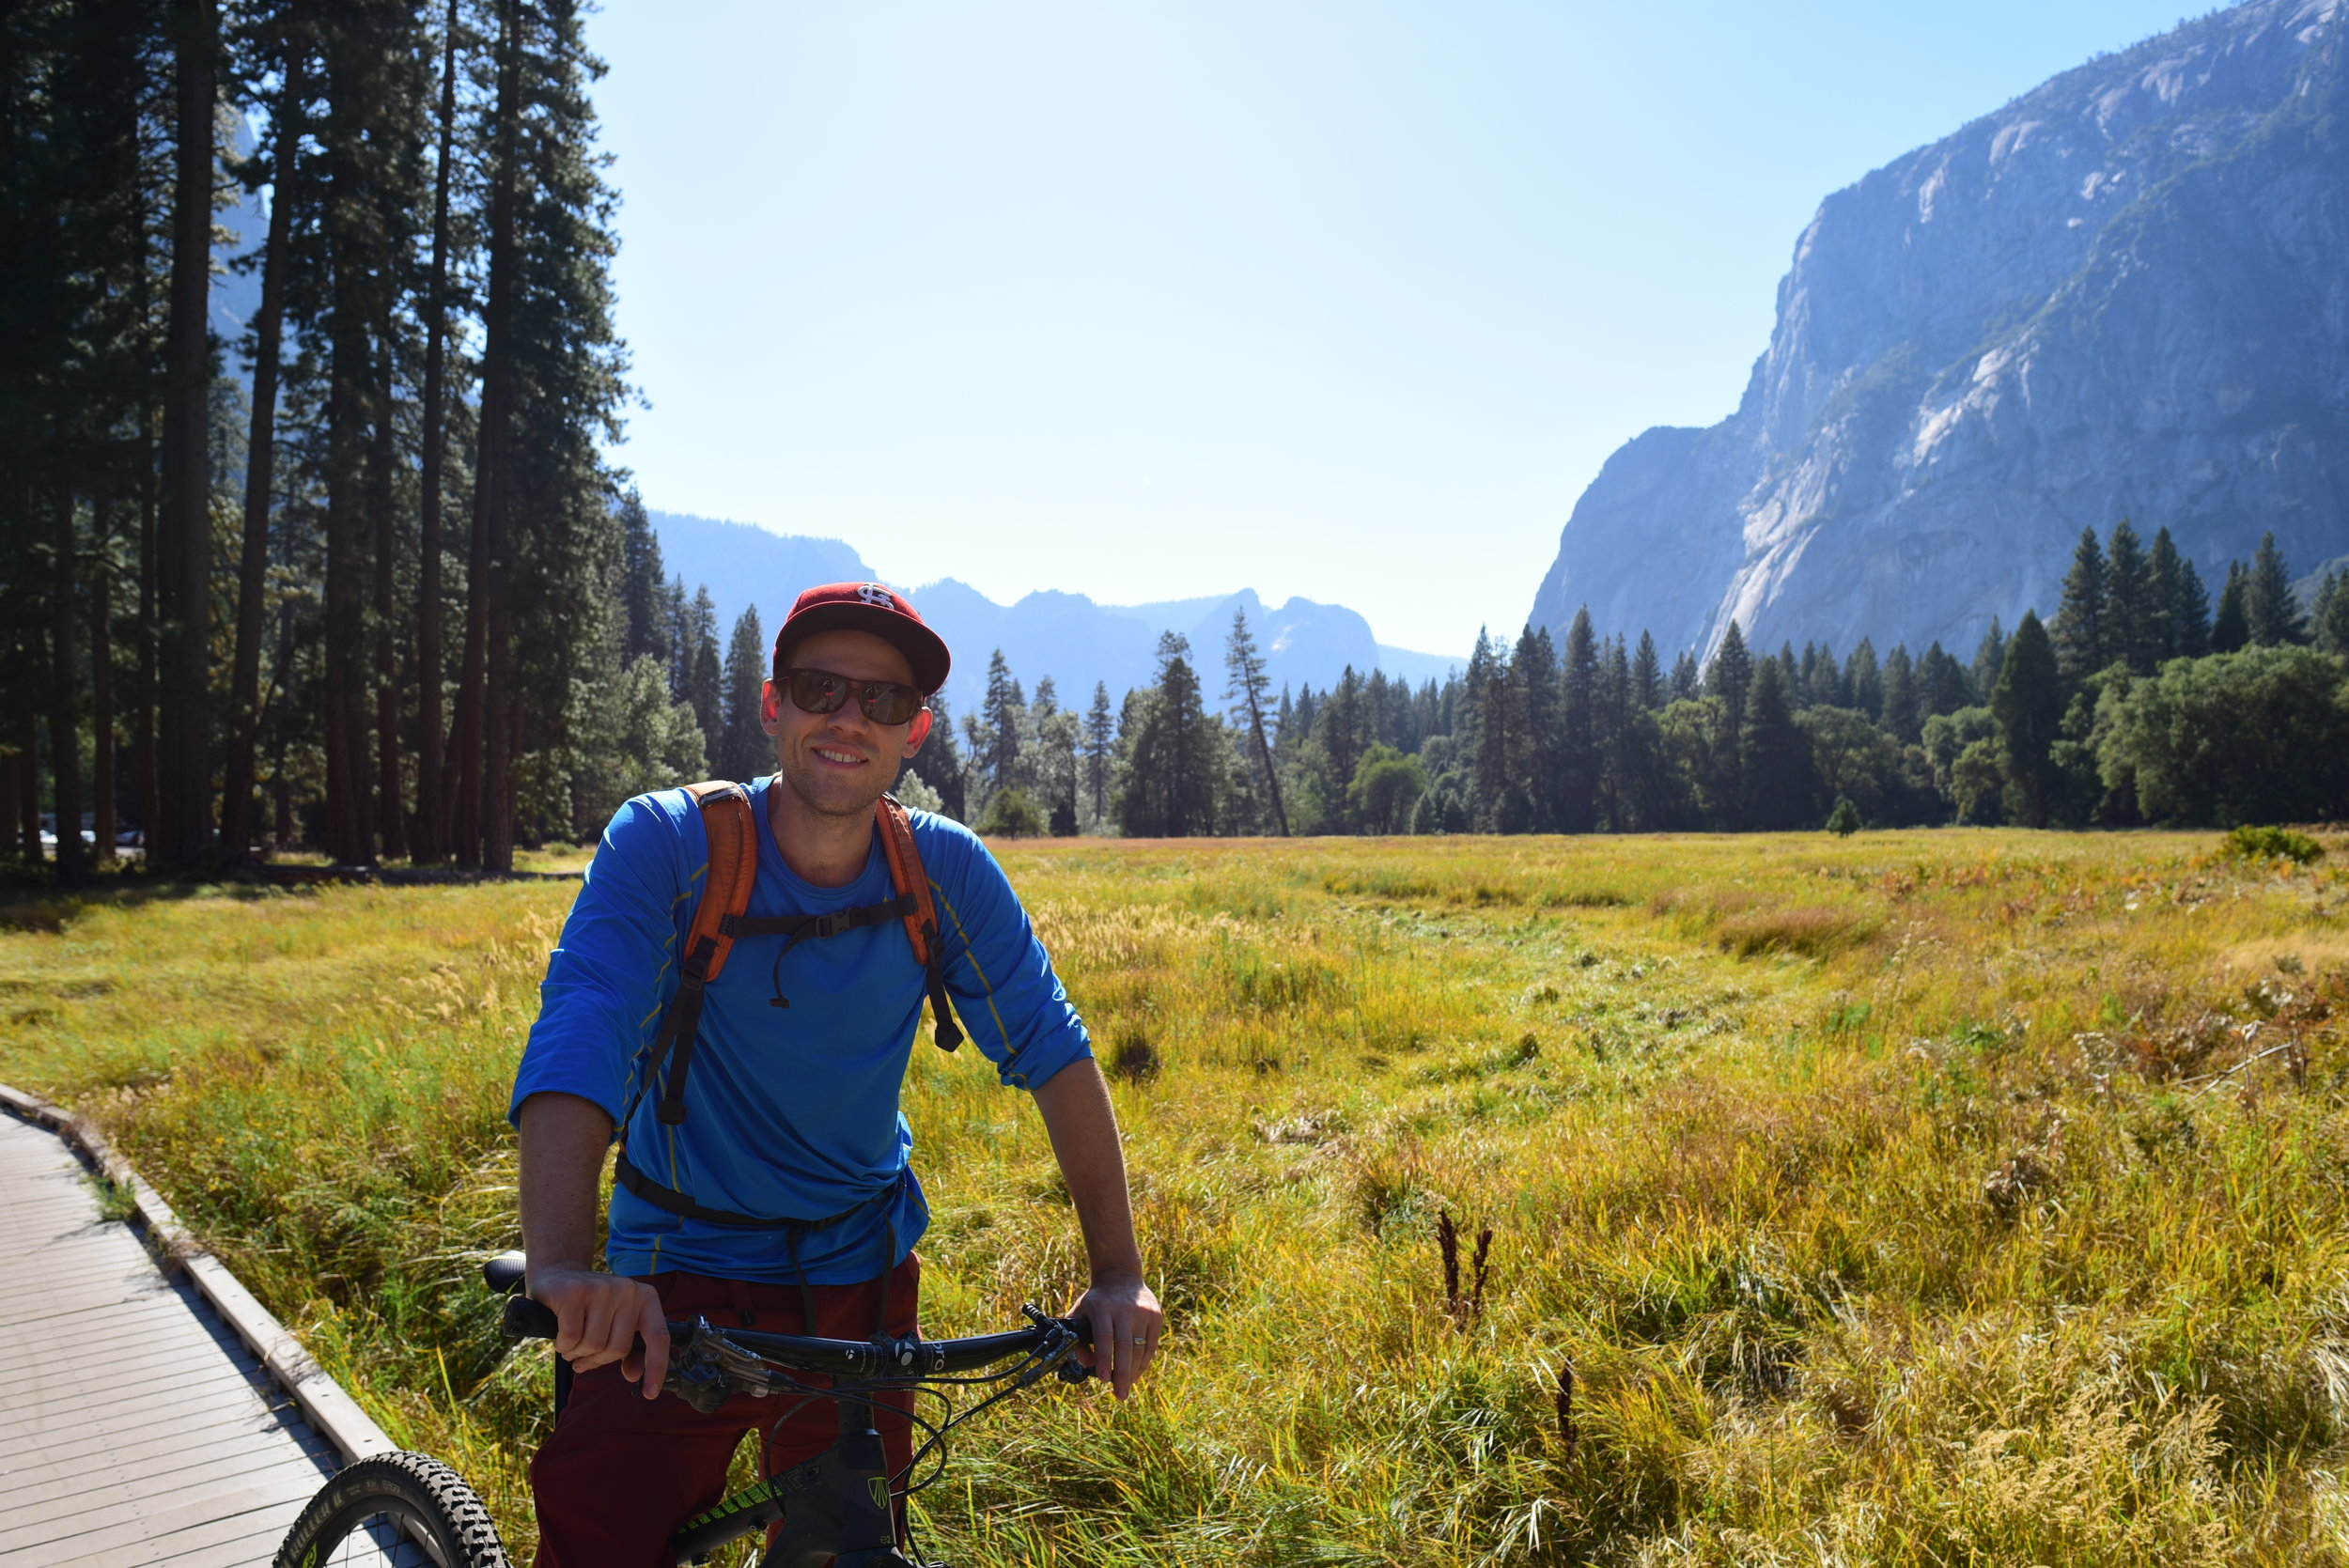 Riding through the Yosemite Valley